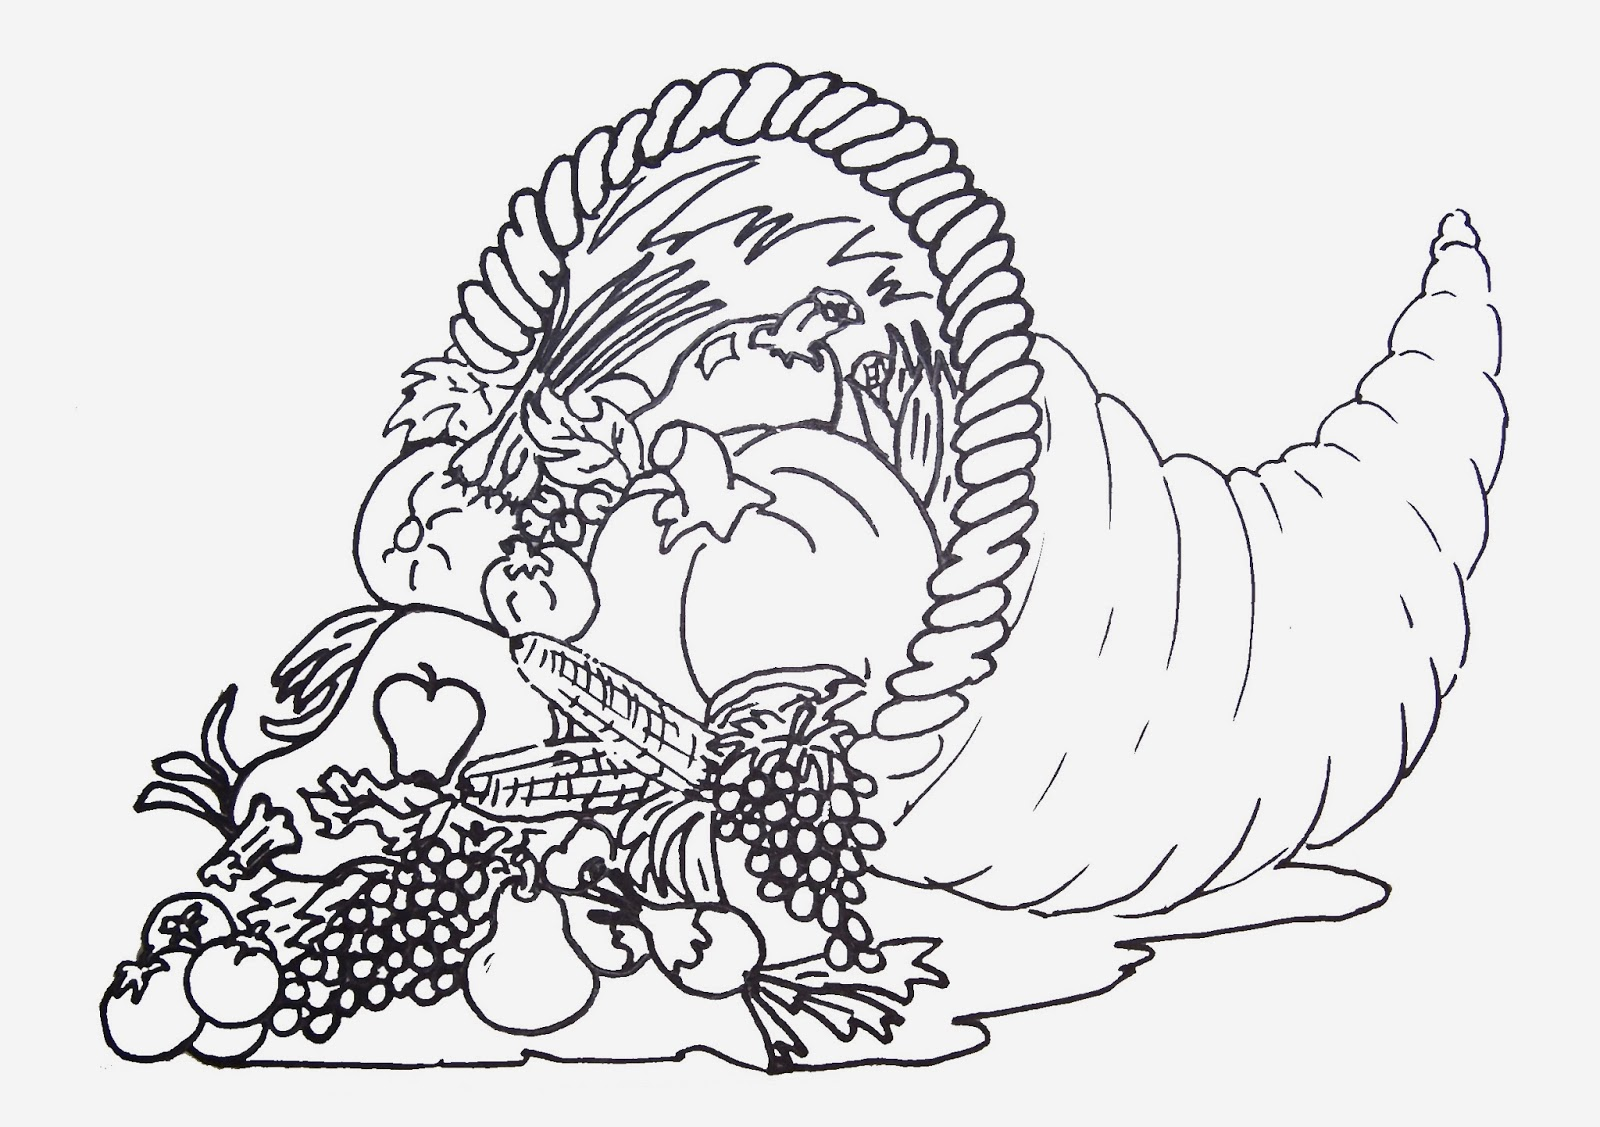 Free Printable Coloring Sheets for Thanksgiving - Kids Creative Chaos